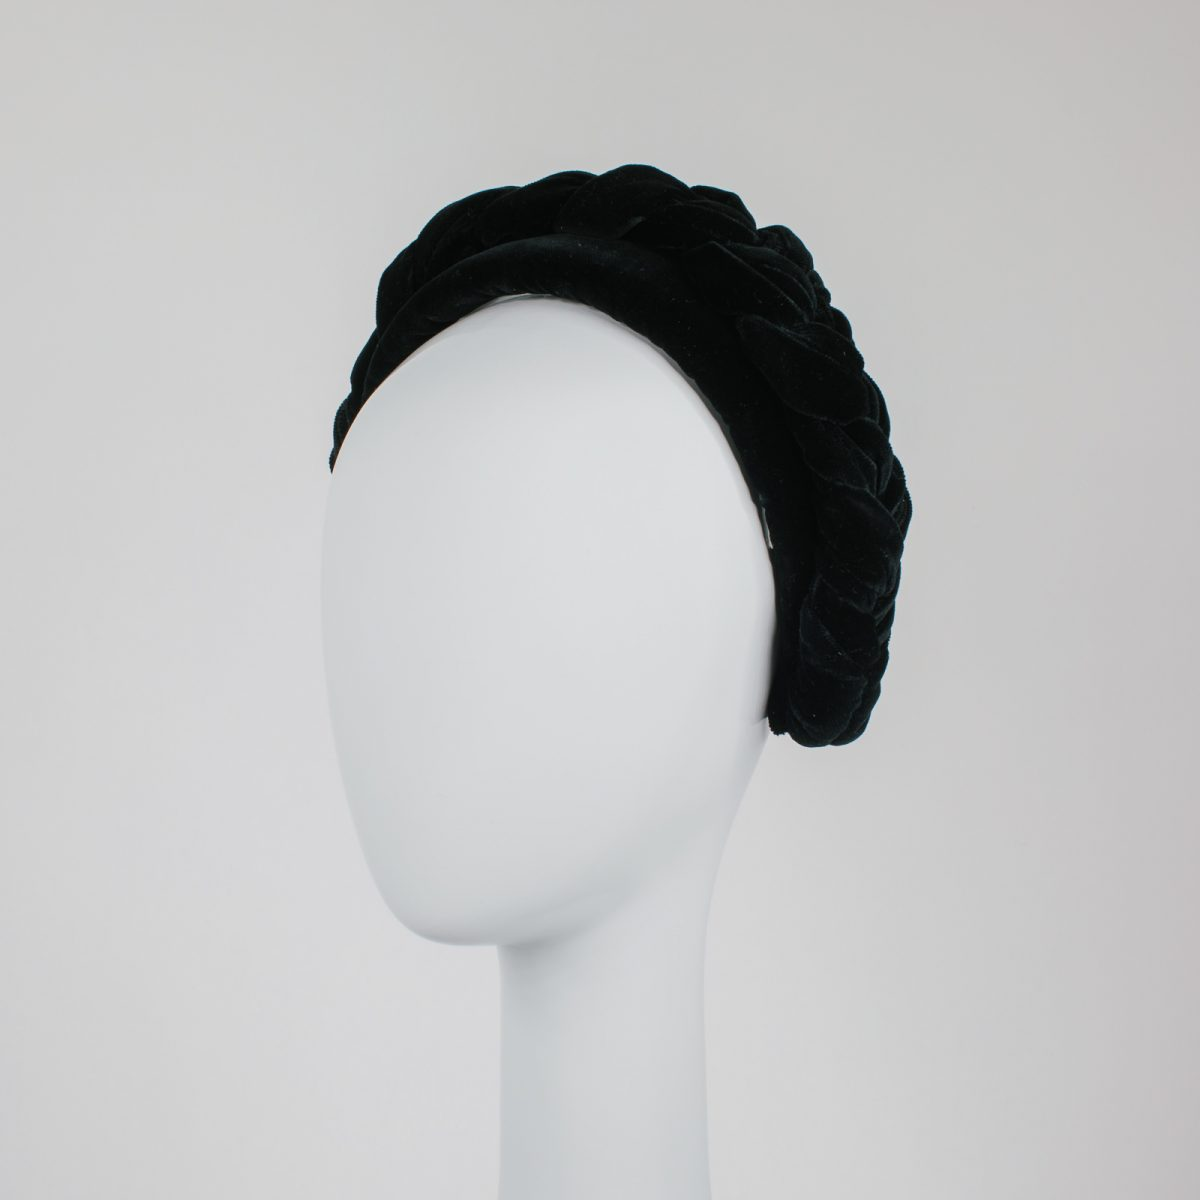 braided velvet headband - best millinery in melbourne - unique designs - handmade with luxurious materials